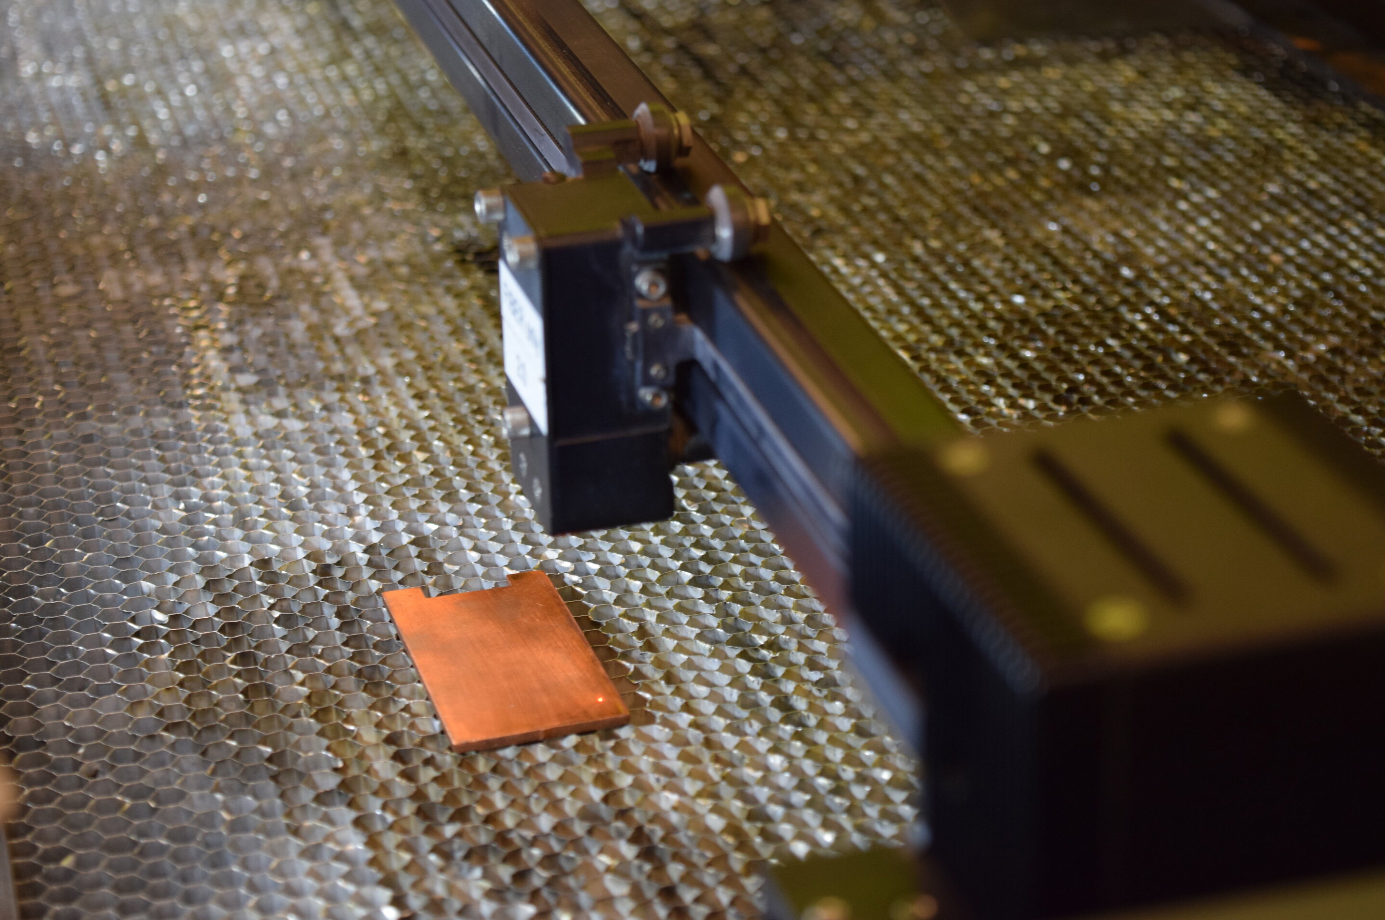 New method for treating a metal surface allows it to kill bacteria instantly